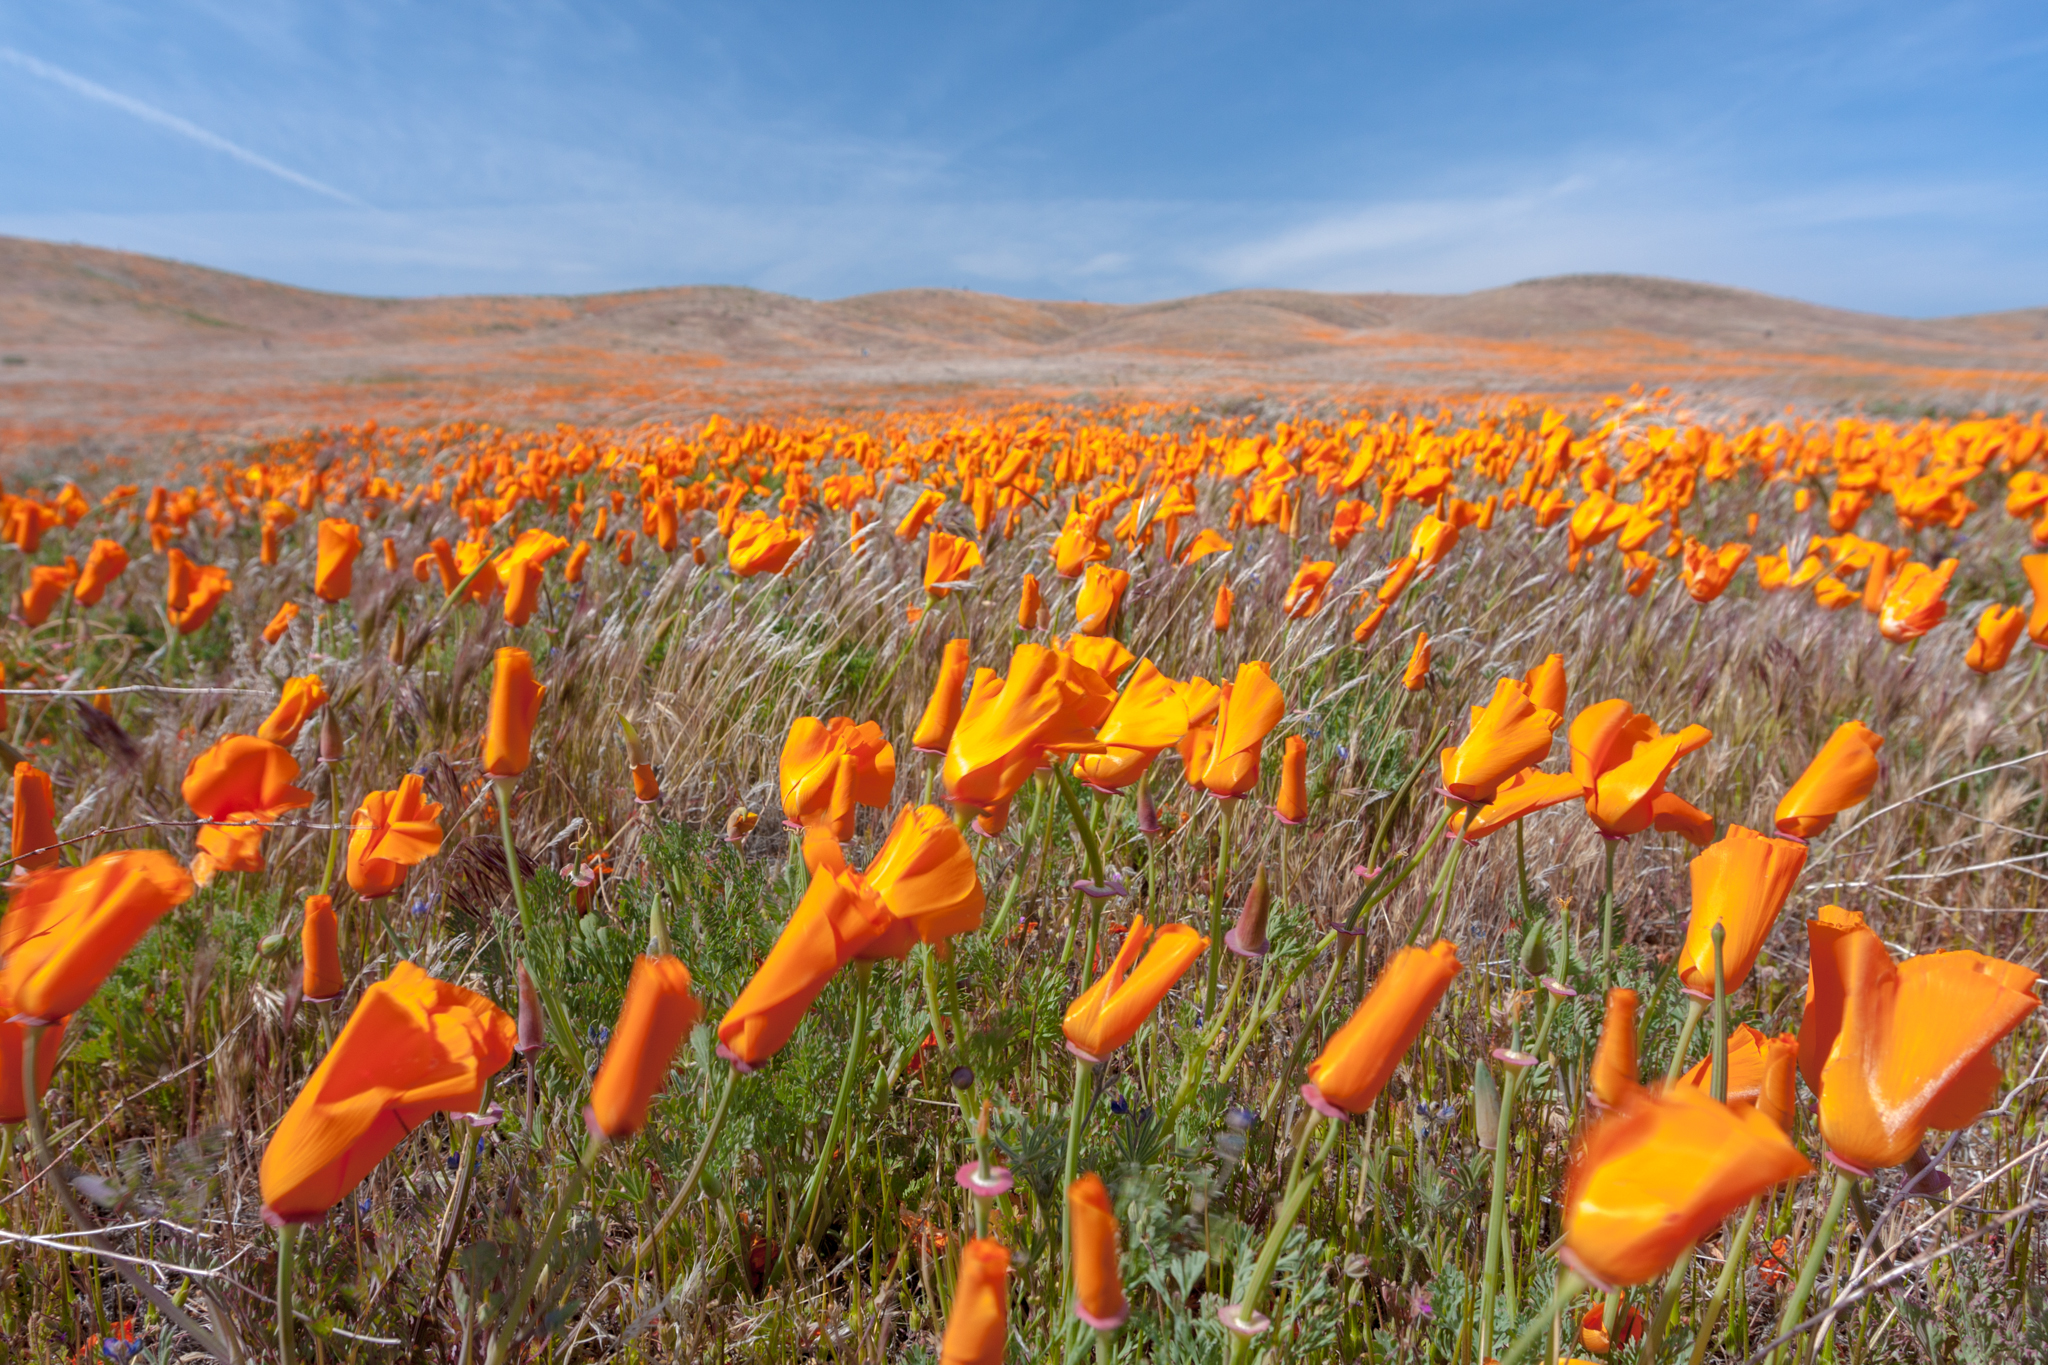 Antelope valley poppy reserve is a great place to photograph. It's probably the most flowers I've seen in one location. Timing is crucial and checking the conditions before heading to the reserve is highly recommended.